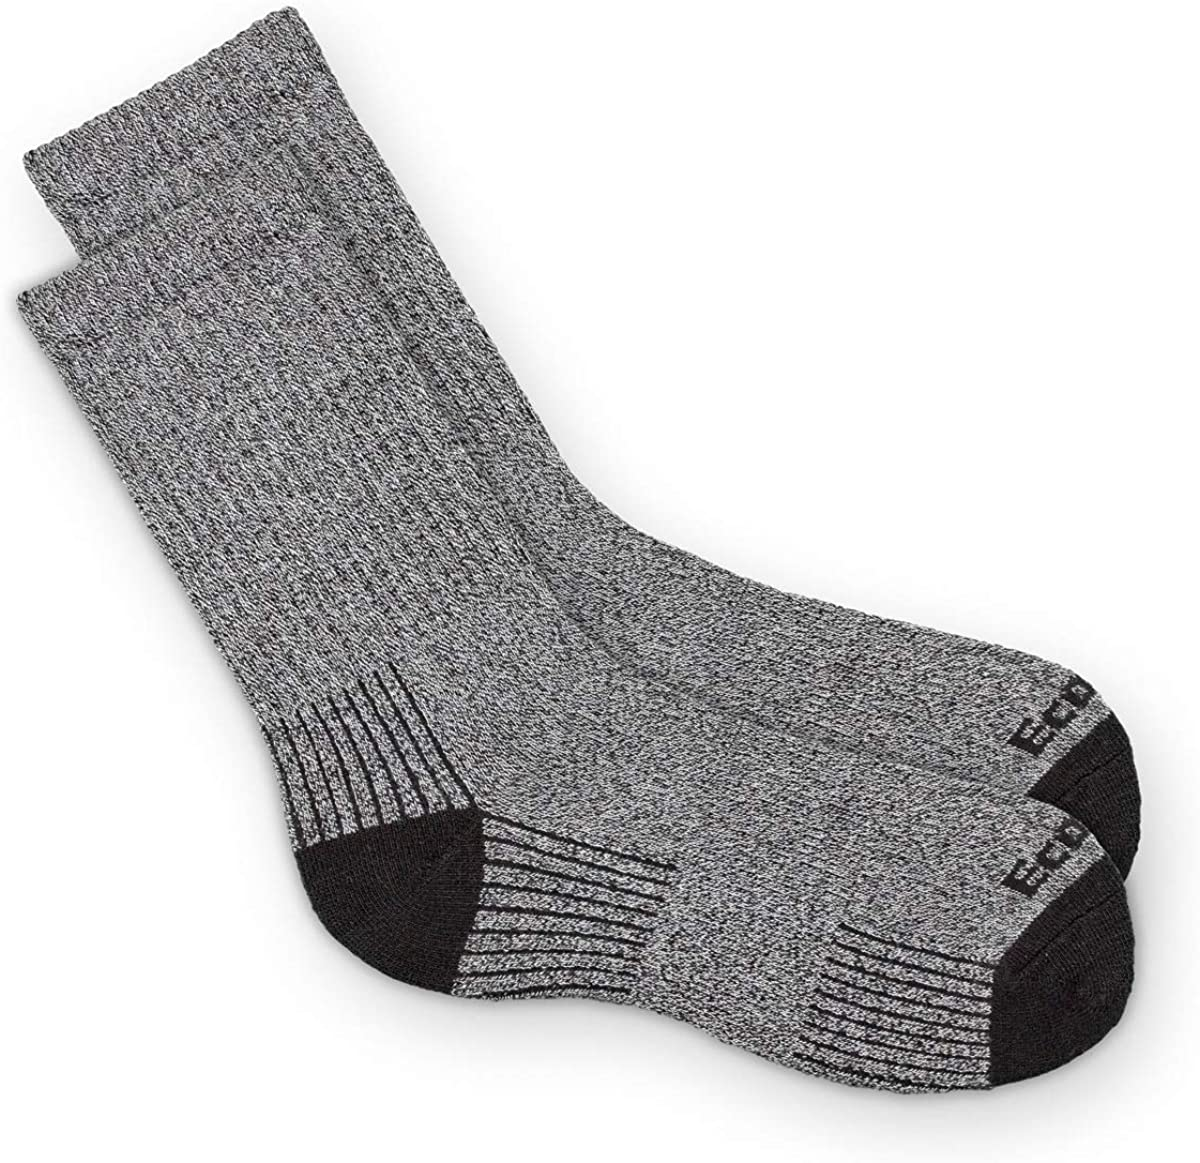 Bamboo Premium Half Challenge the lowest Large discharge sale price of Japan Cushion Crew Socks Dress Ul Sport Work for